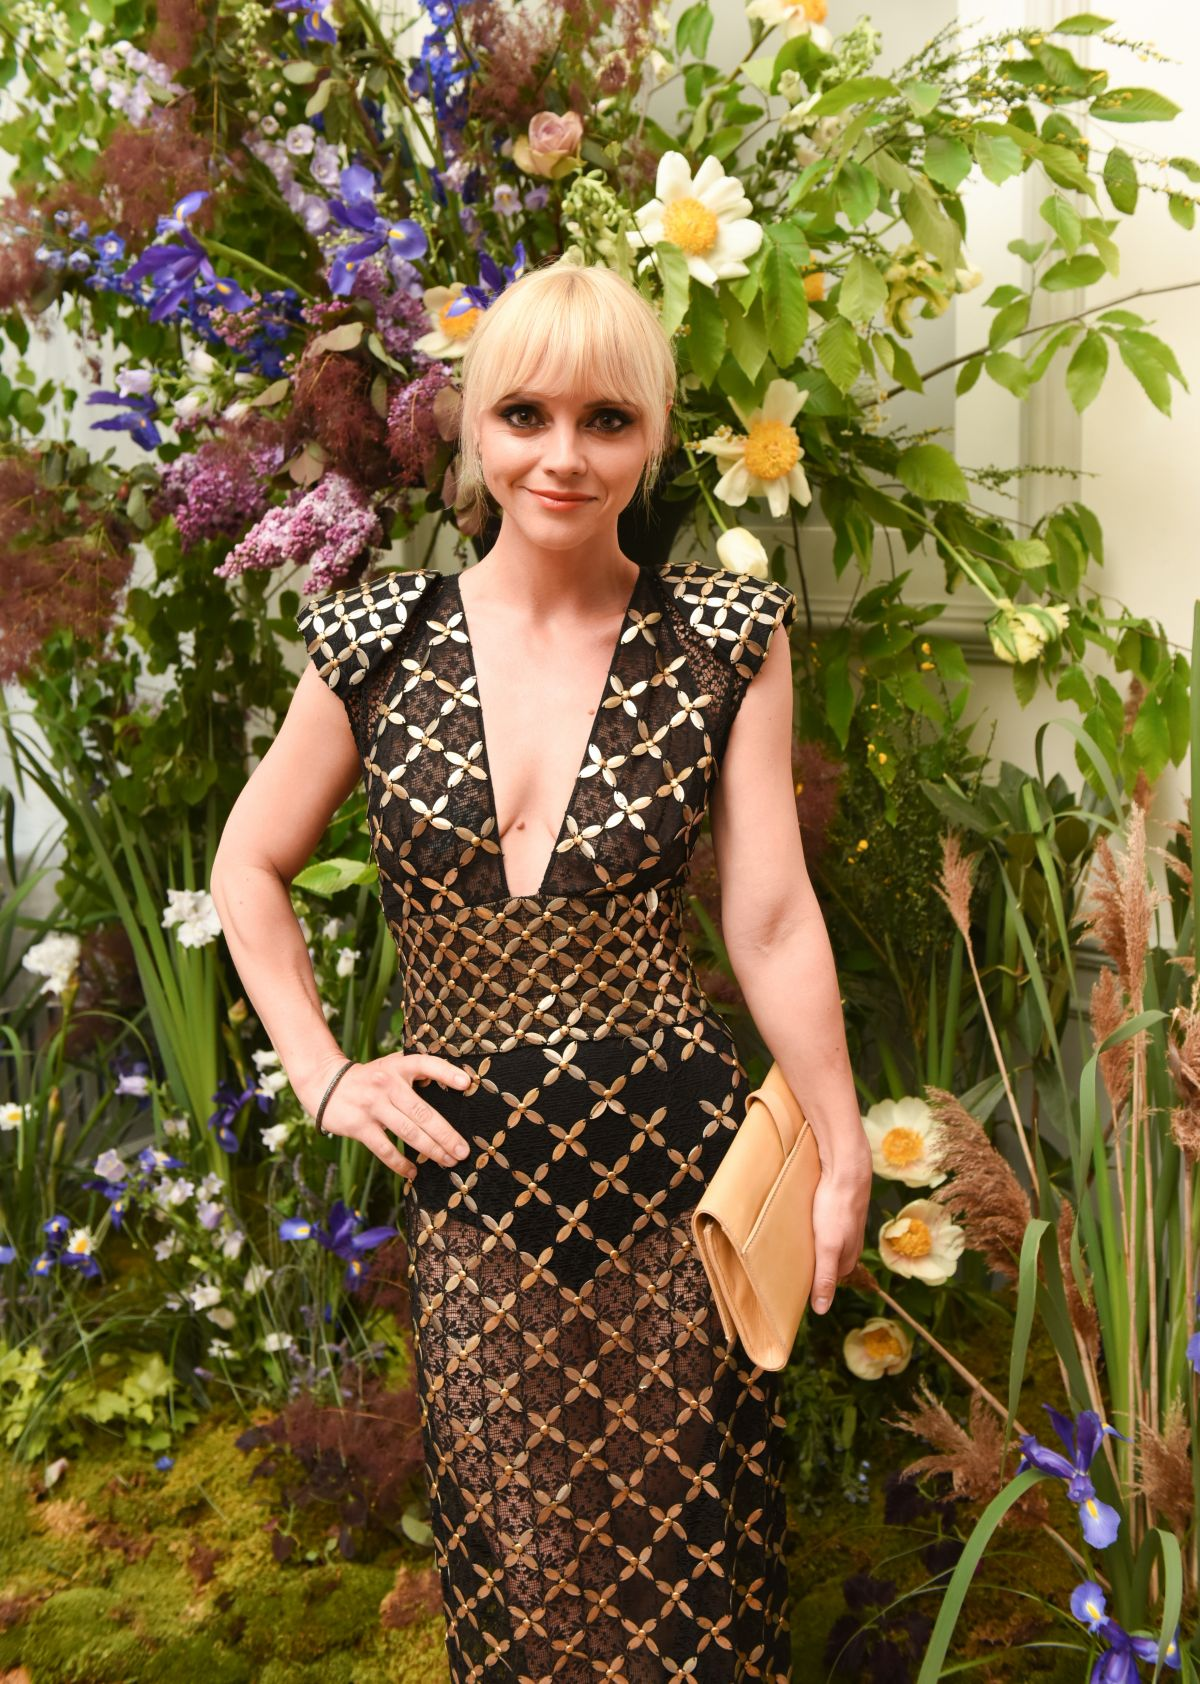 CHRISTINA RICCI at Museum of Arts and Design